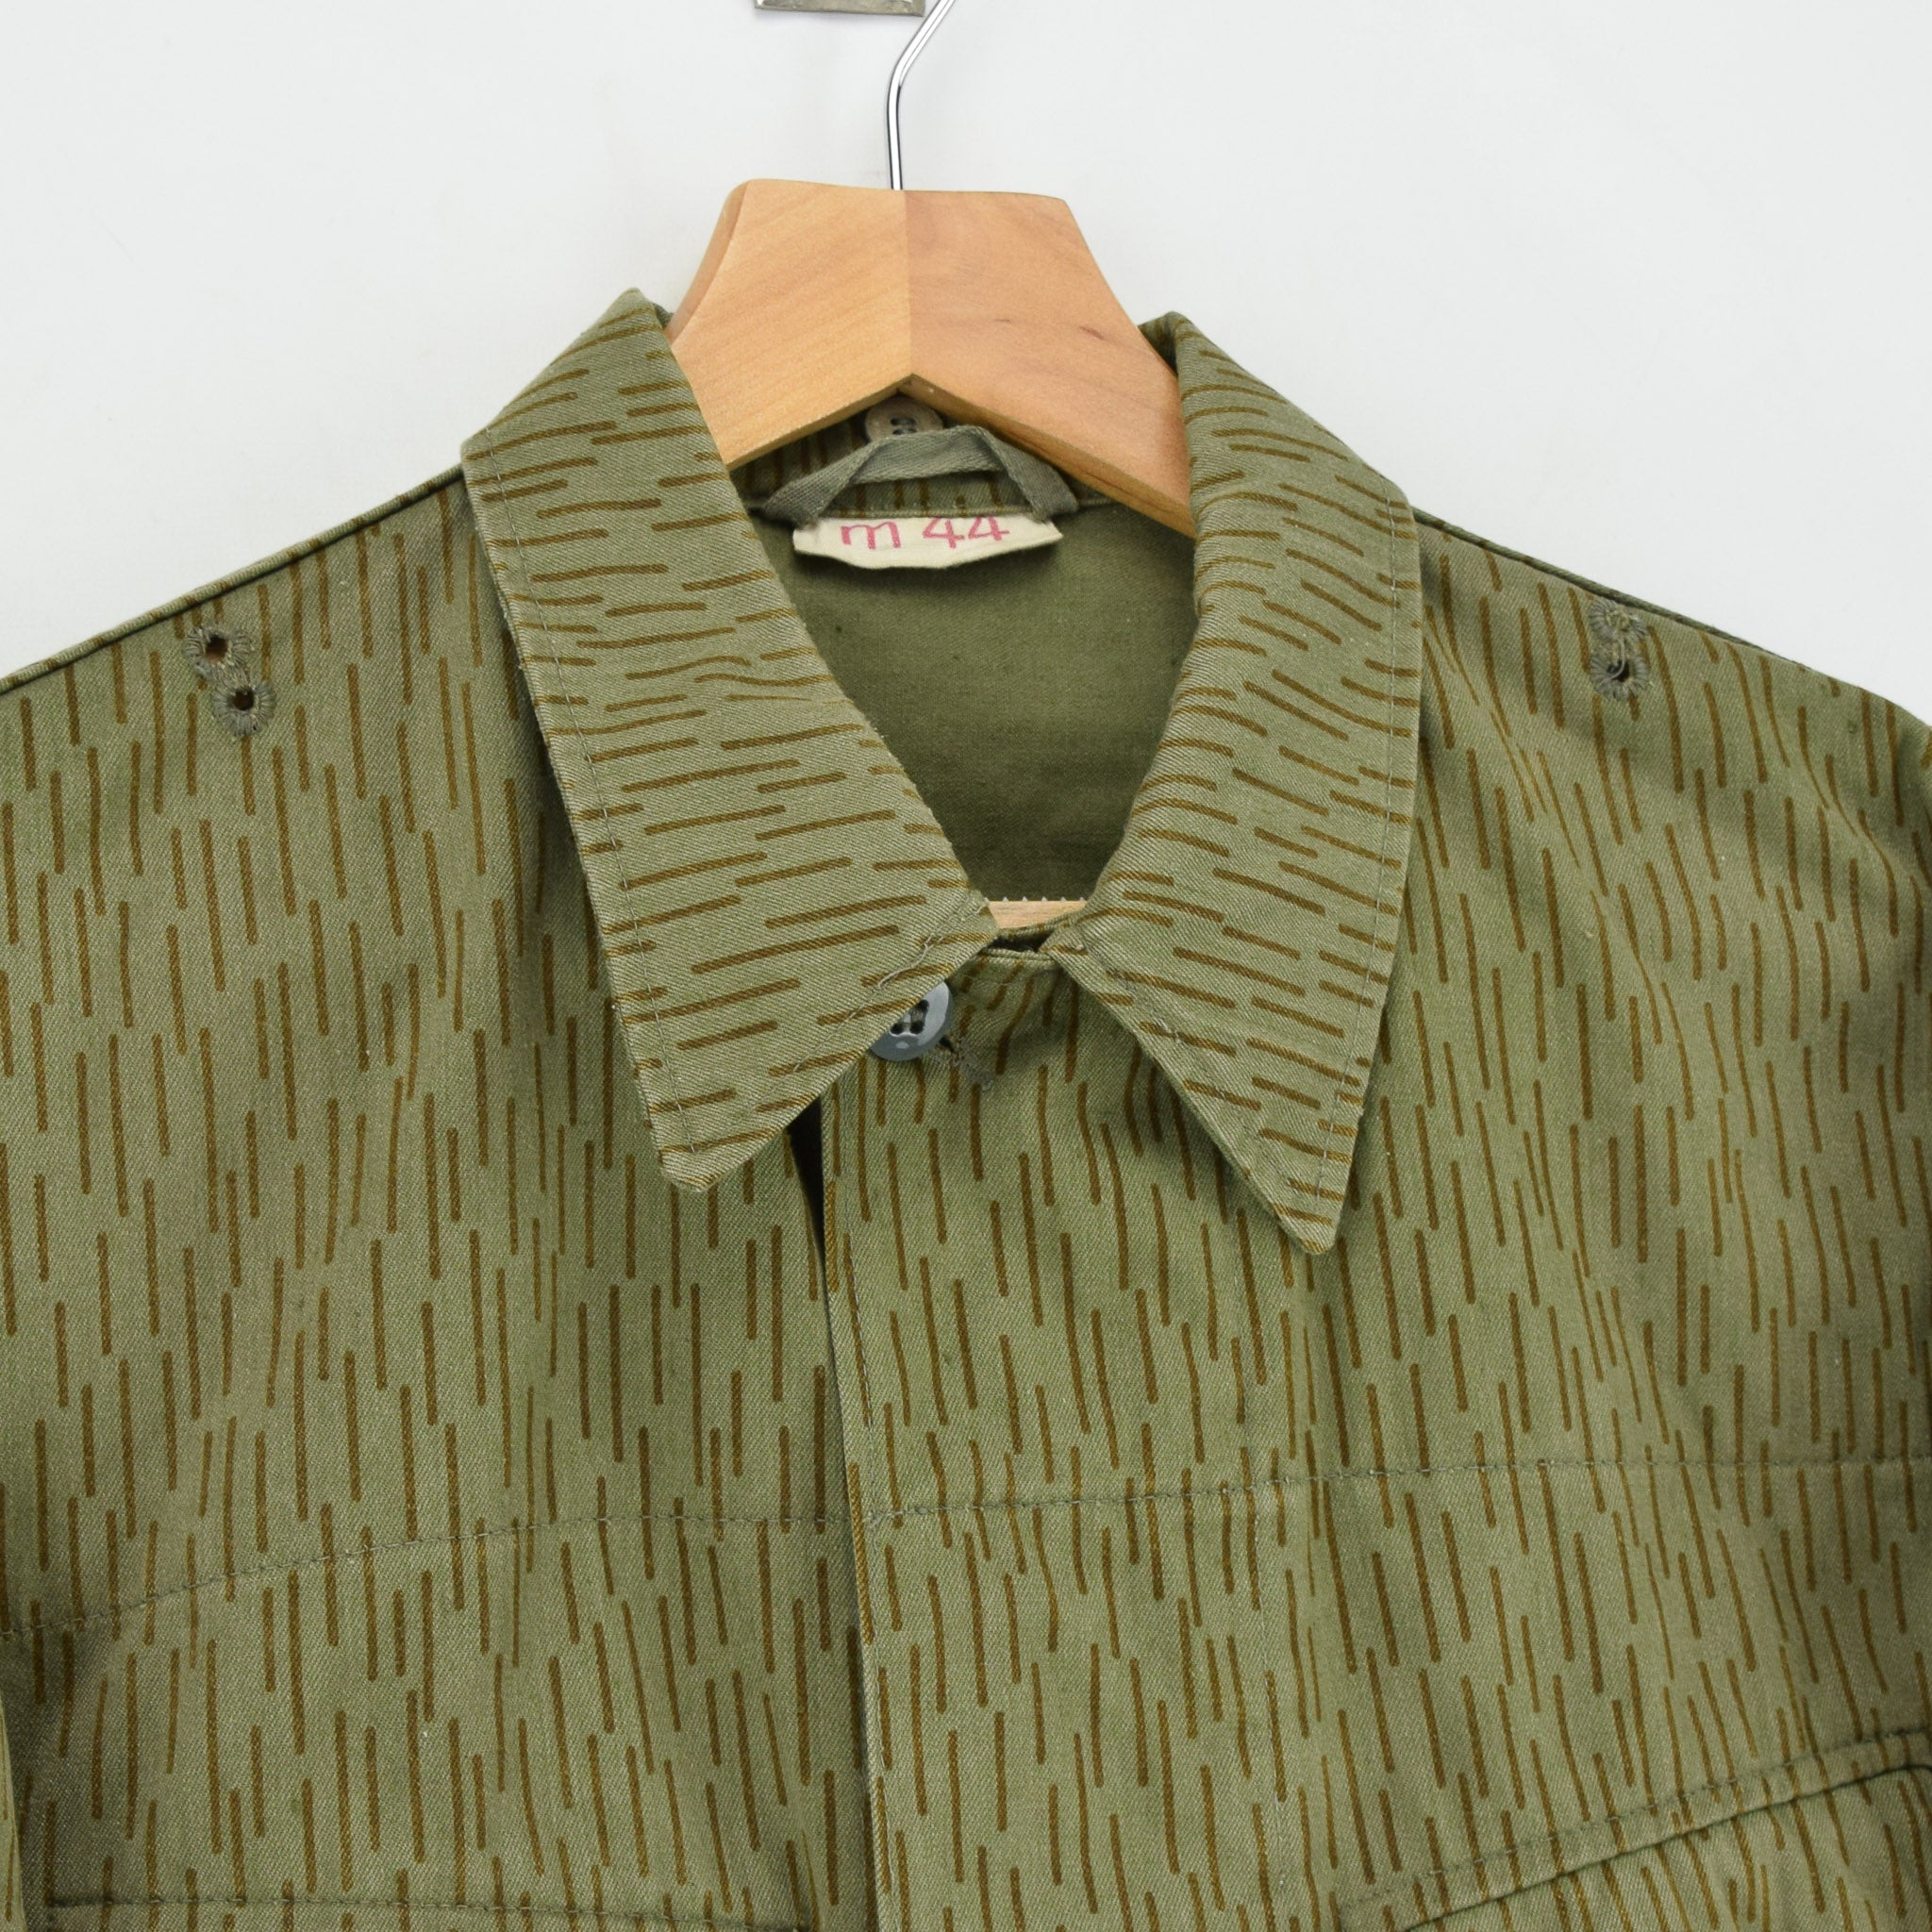 Vintage 80s DDR NVA East German Army Combat Jacket Strichtarn Camo S collar